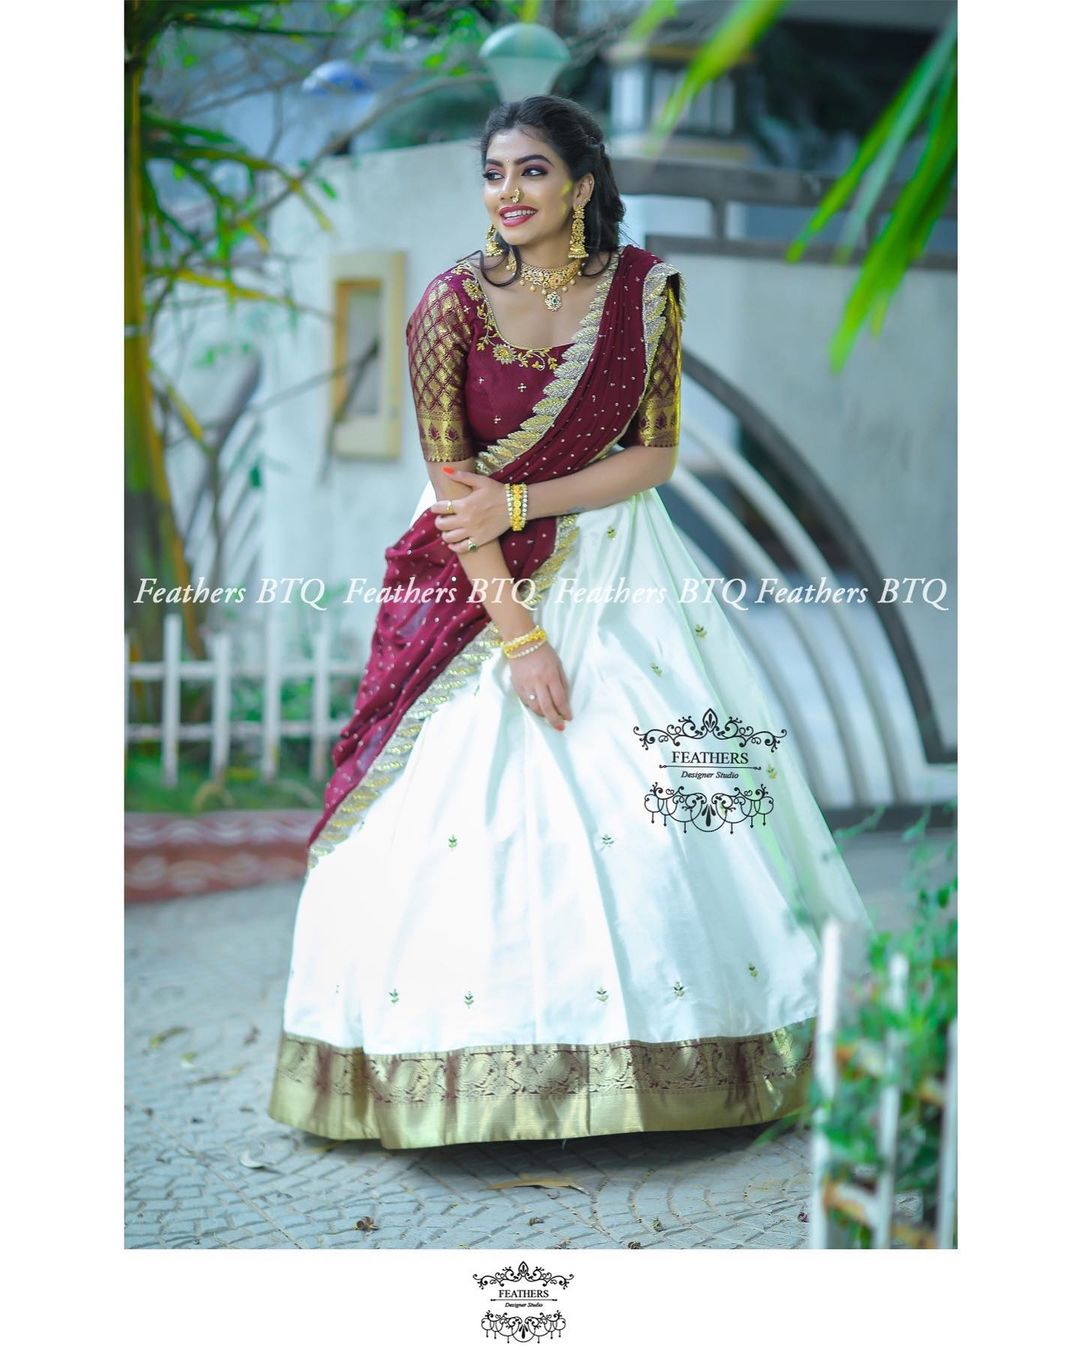 Stunning pearl white color pattu lehenga and wine color blouse with net dupatta. Blouse with gold zari sleeves. 2021-04-15